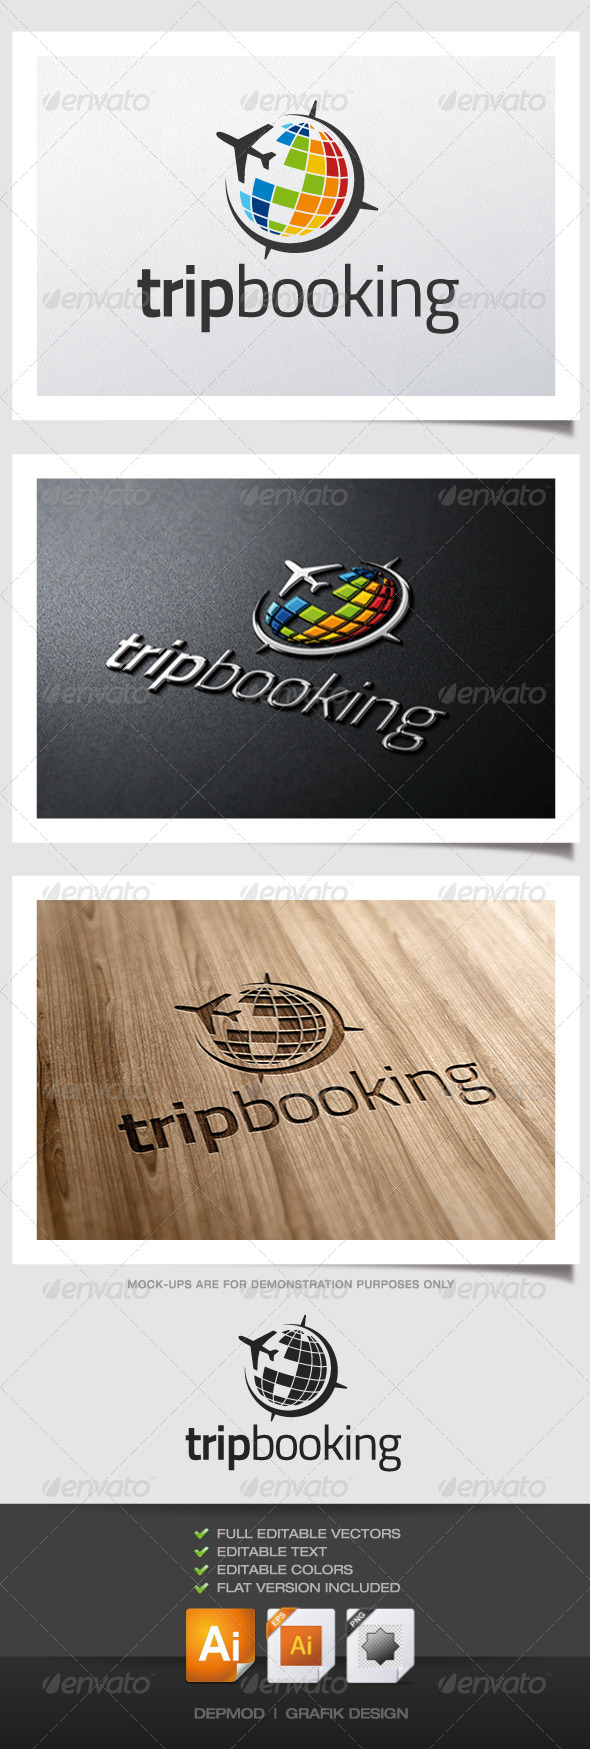 Trip Booking Logo - Symbols Logo Templates